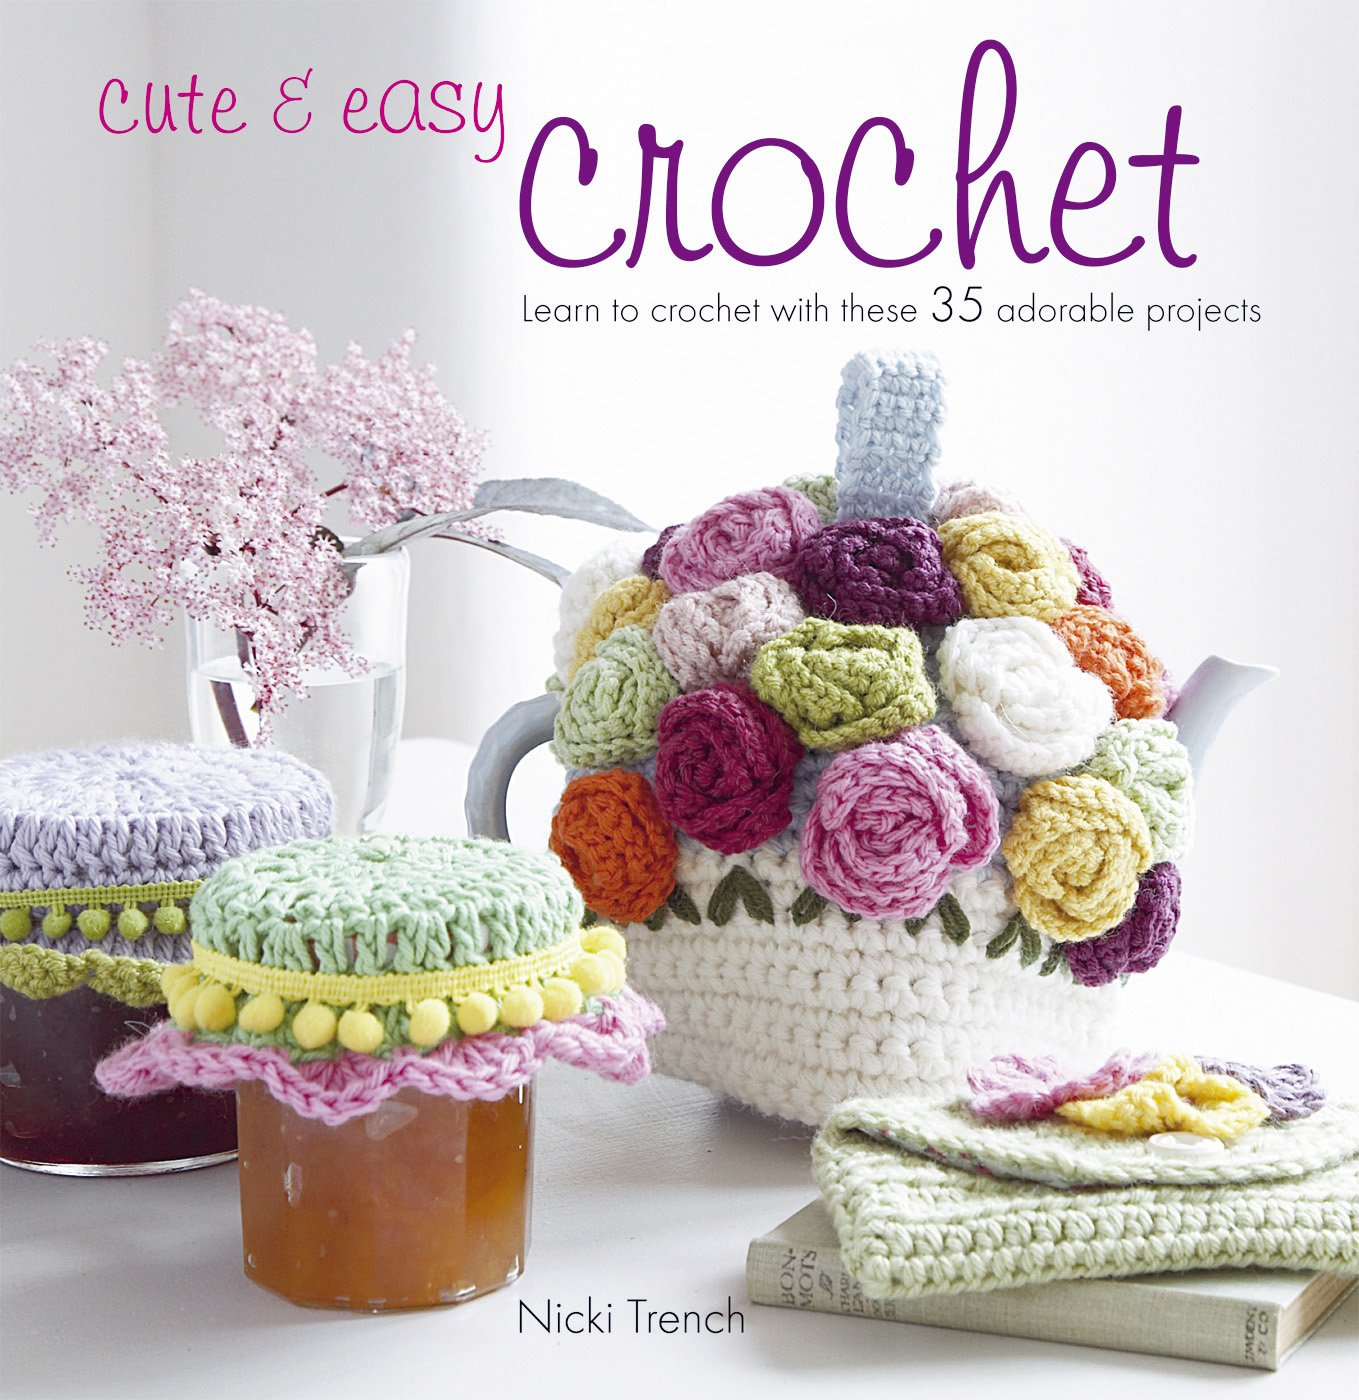 Image result for cute and easy crochet